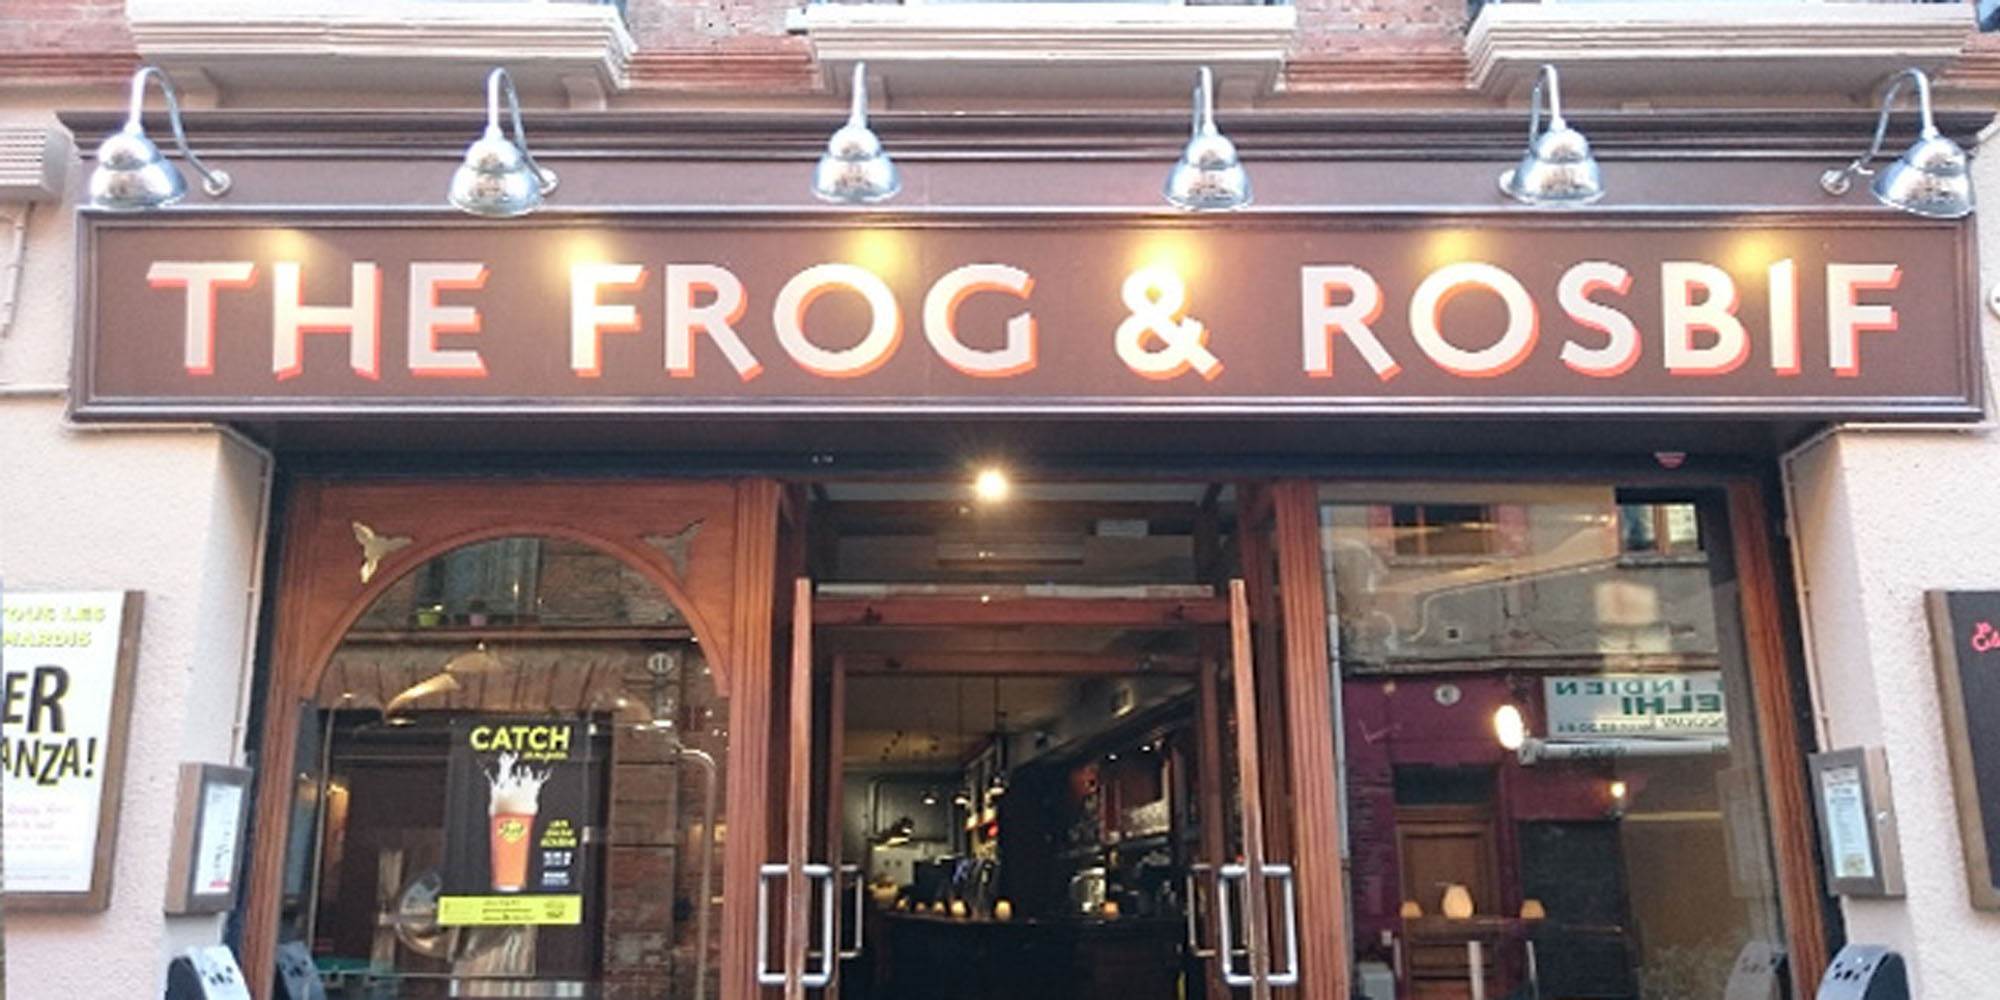 Brunch The Frog & Rosbif (31000 Toulouse)